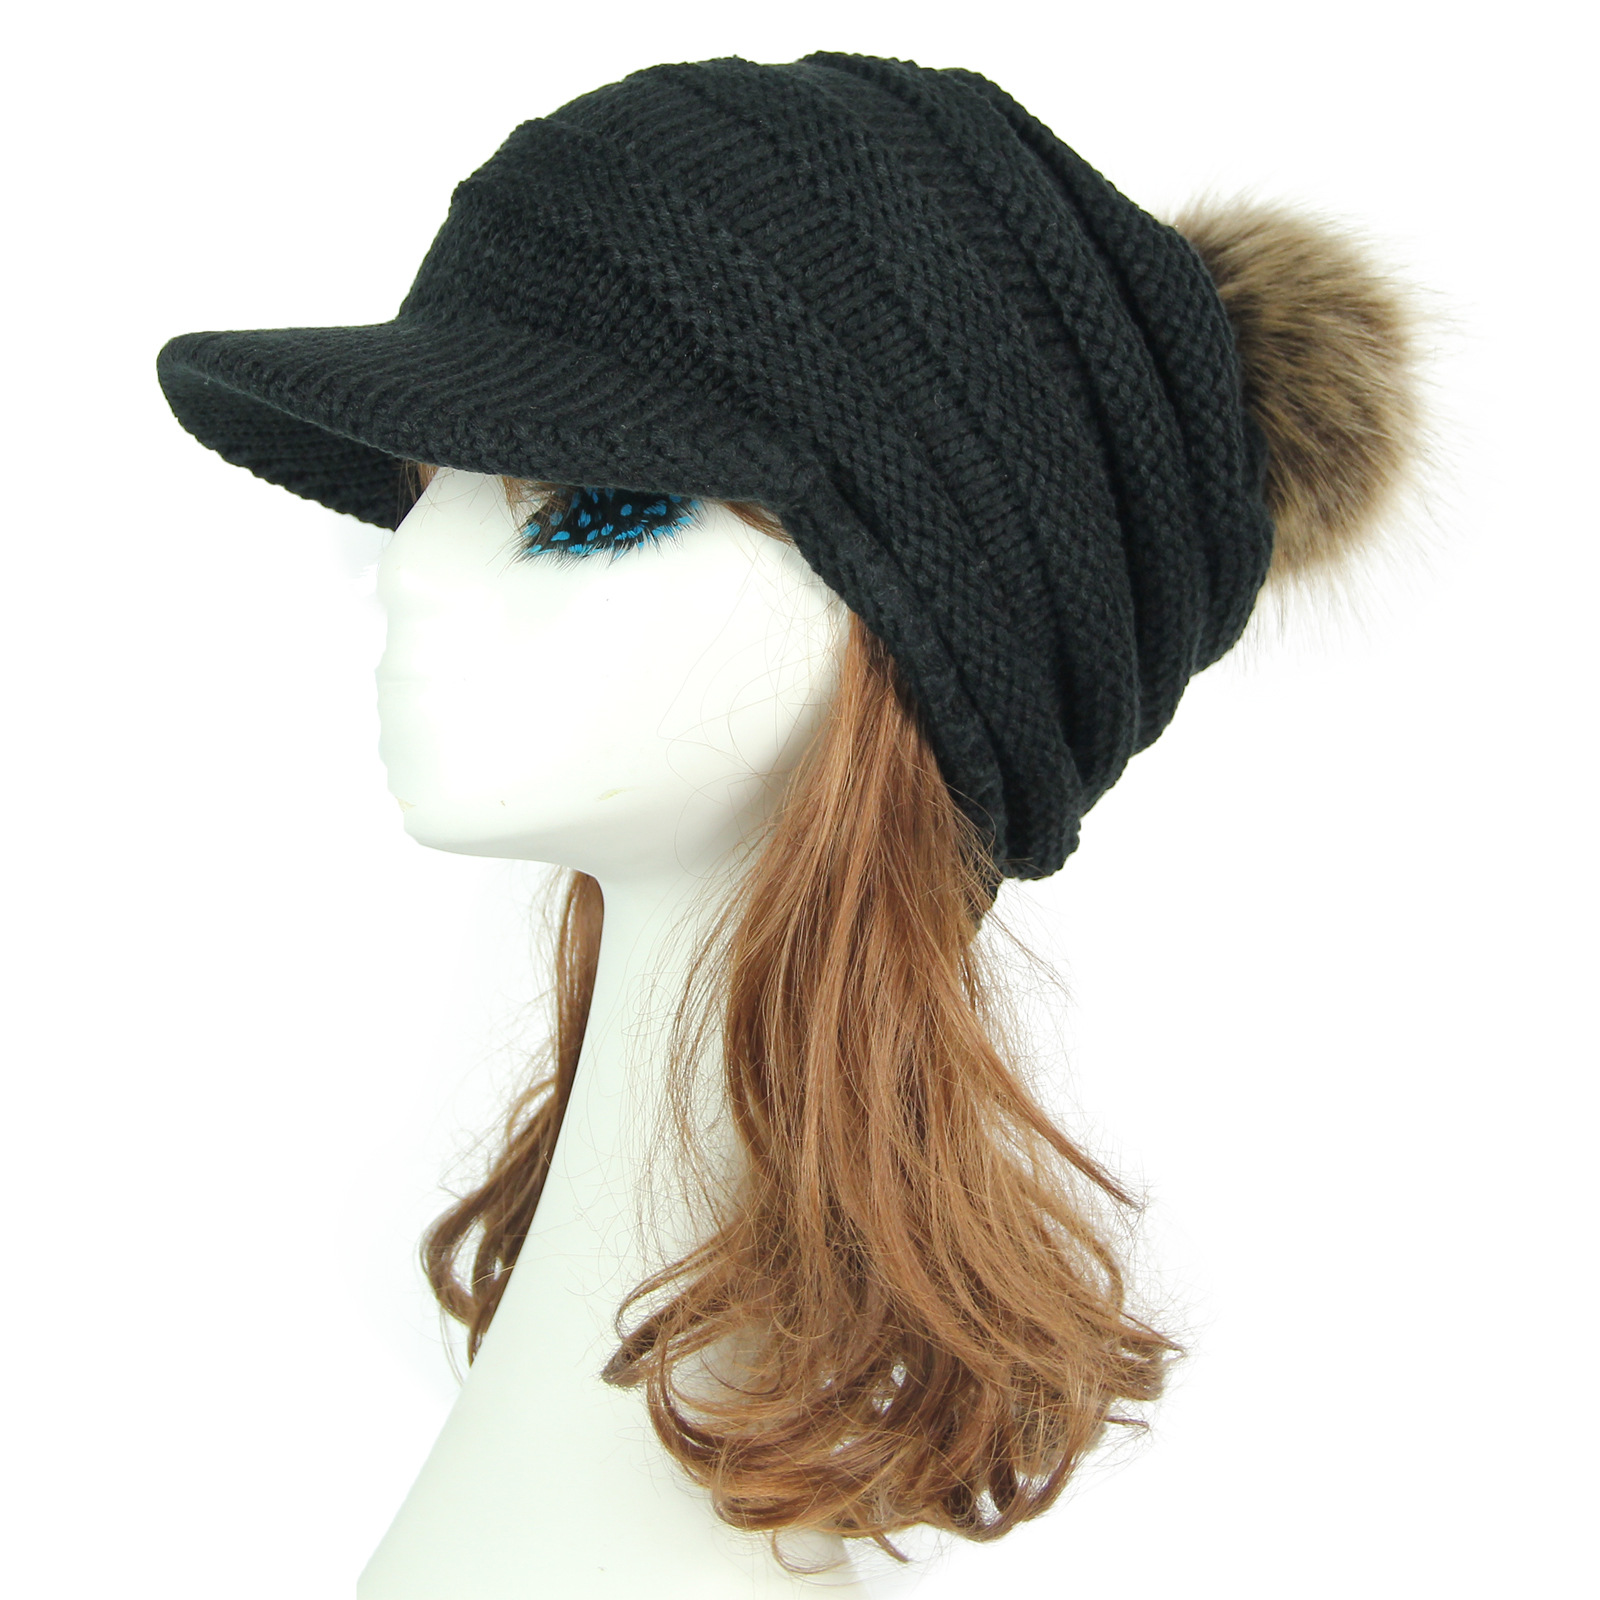 14997970e US $13.32 |Women Winter Warm Knit Hat Acrylic Snow Ski Caps With Visor Warm  Ponytail Caps for Women Cute Cable Knitted Winter Hats AA10060-in Berets ...